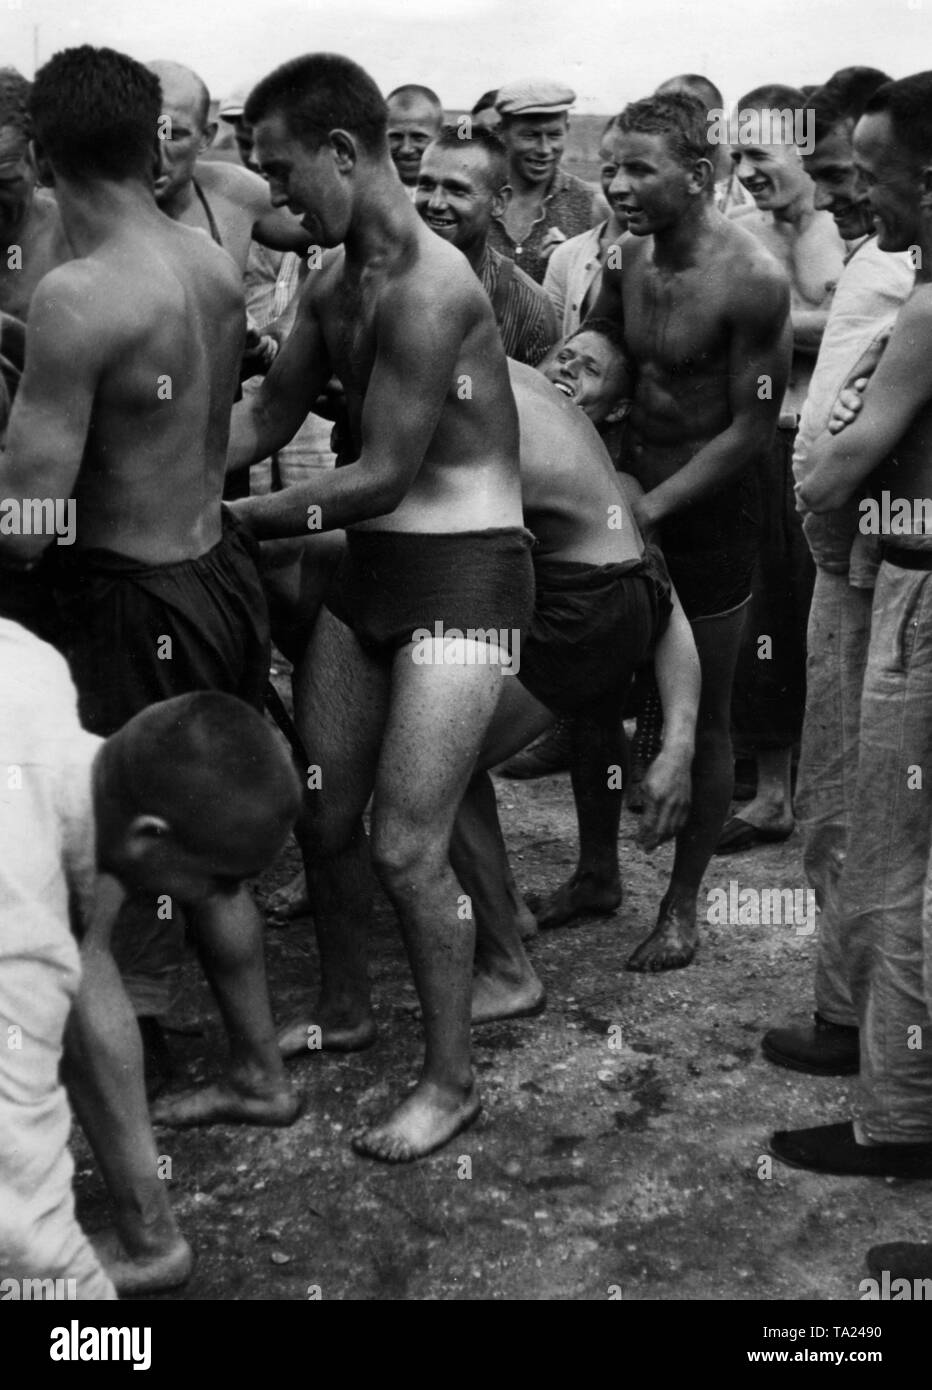 """People laugh and joke in a """"swimming pool"""" of the Dachau concentration camp, one of the propaganda photos of the NS regime. Stock Photo"""